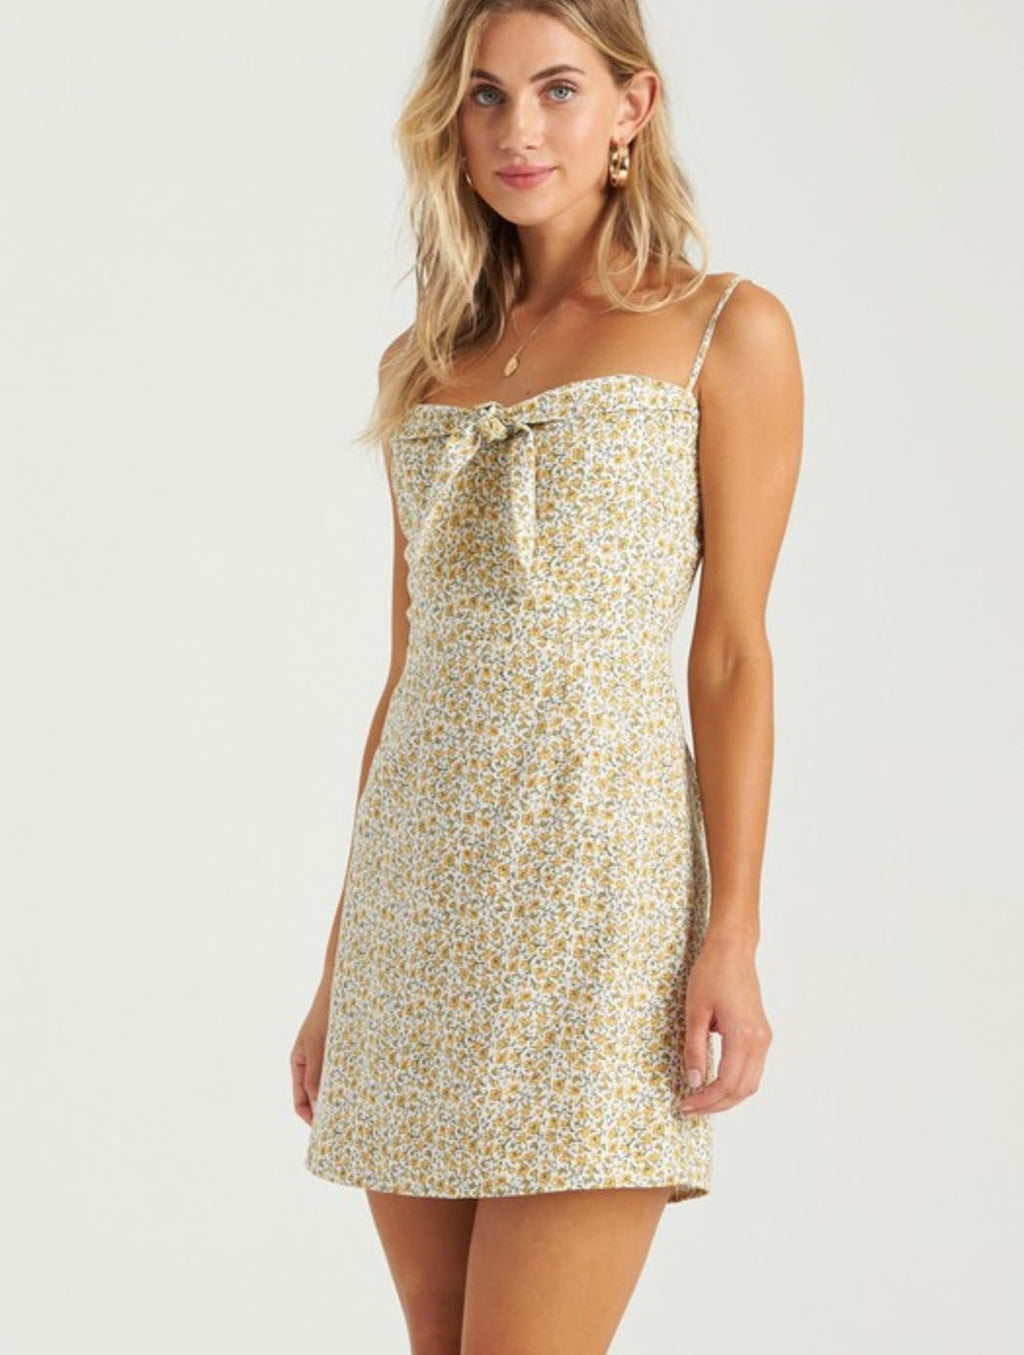 Billabong Endless Summer Dress in Bright Gold